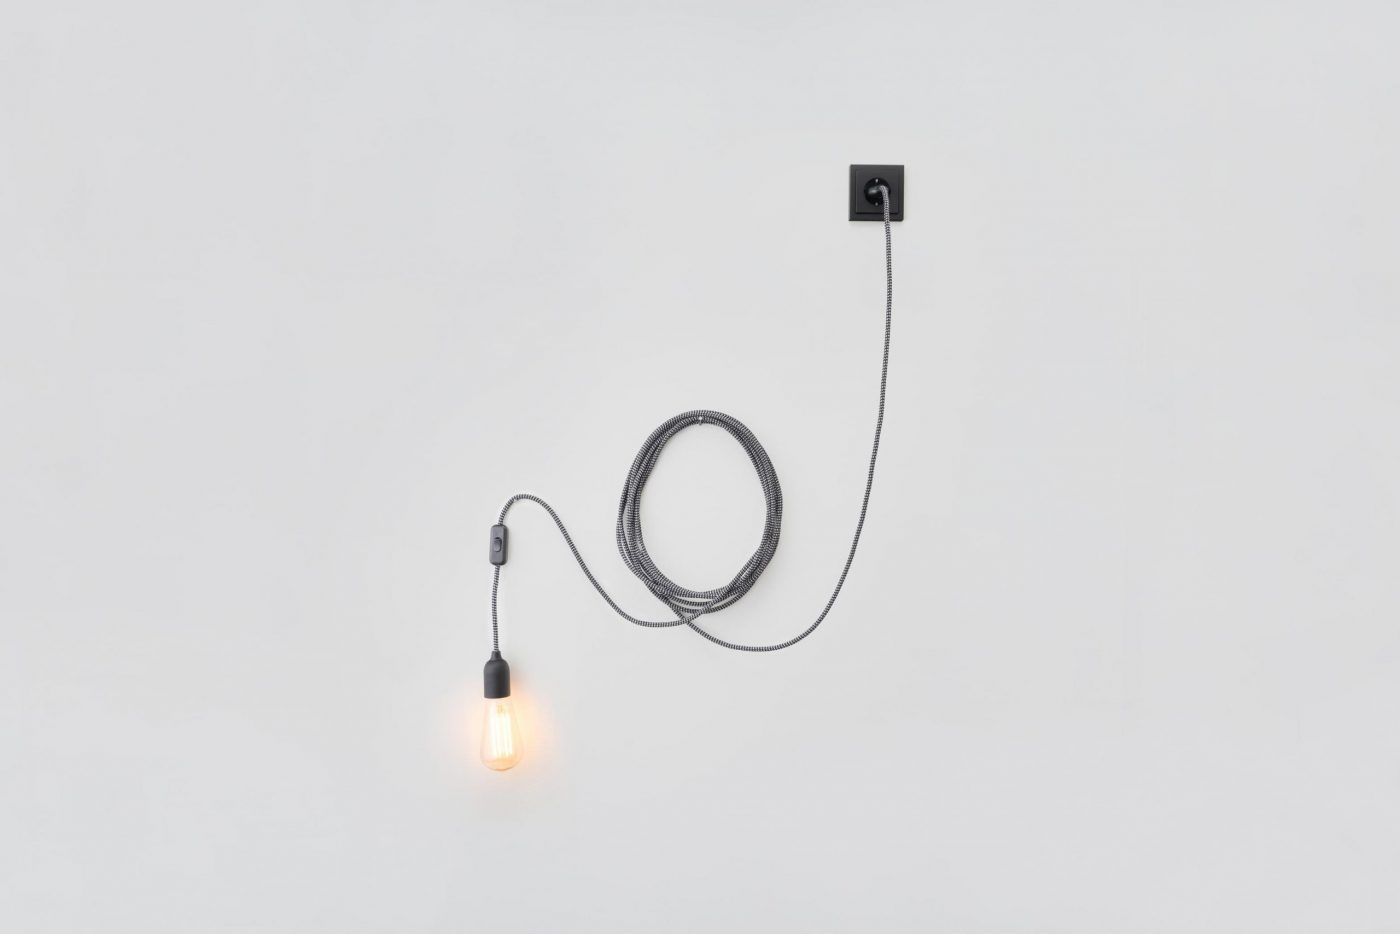 05 MYKILOS LINUS LONG LAMP PENDELLEUCHTE TEXTILE CABLE TEXTILKABEL LANG PLUG IN HANGING LAMP scaled